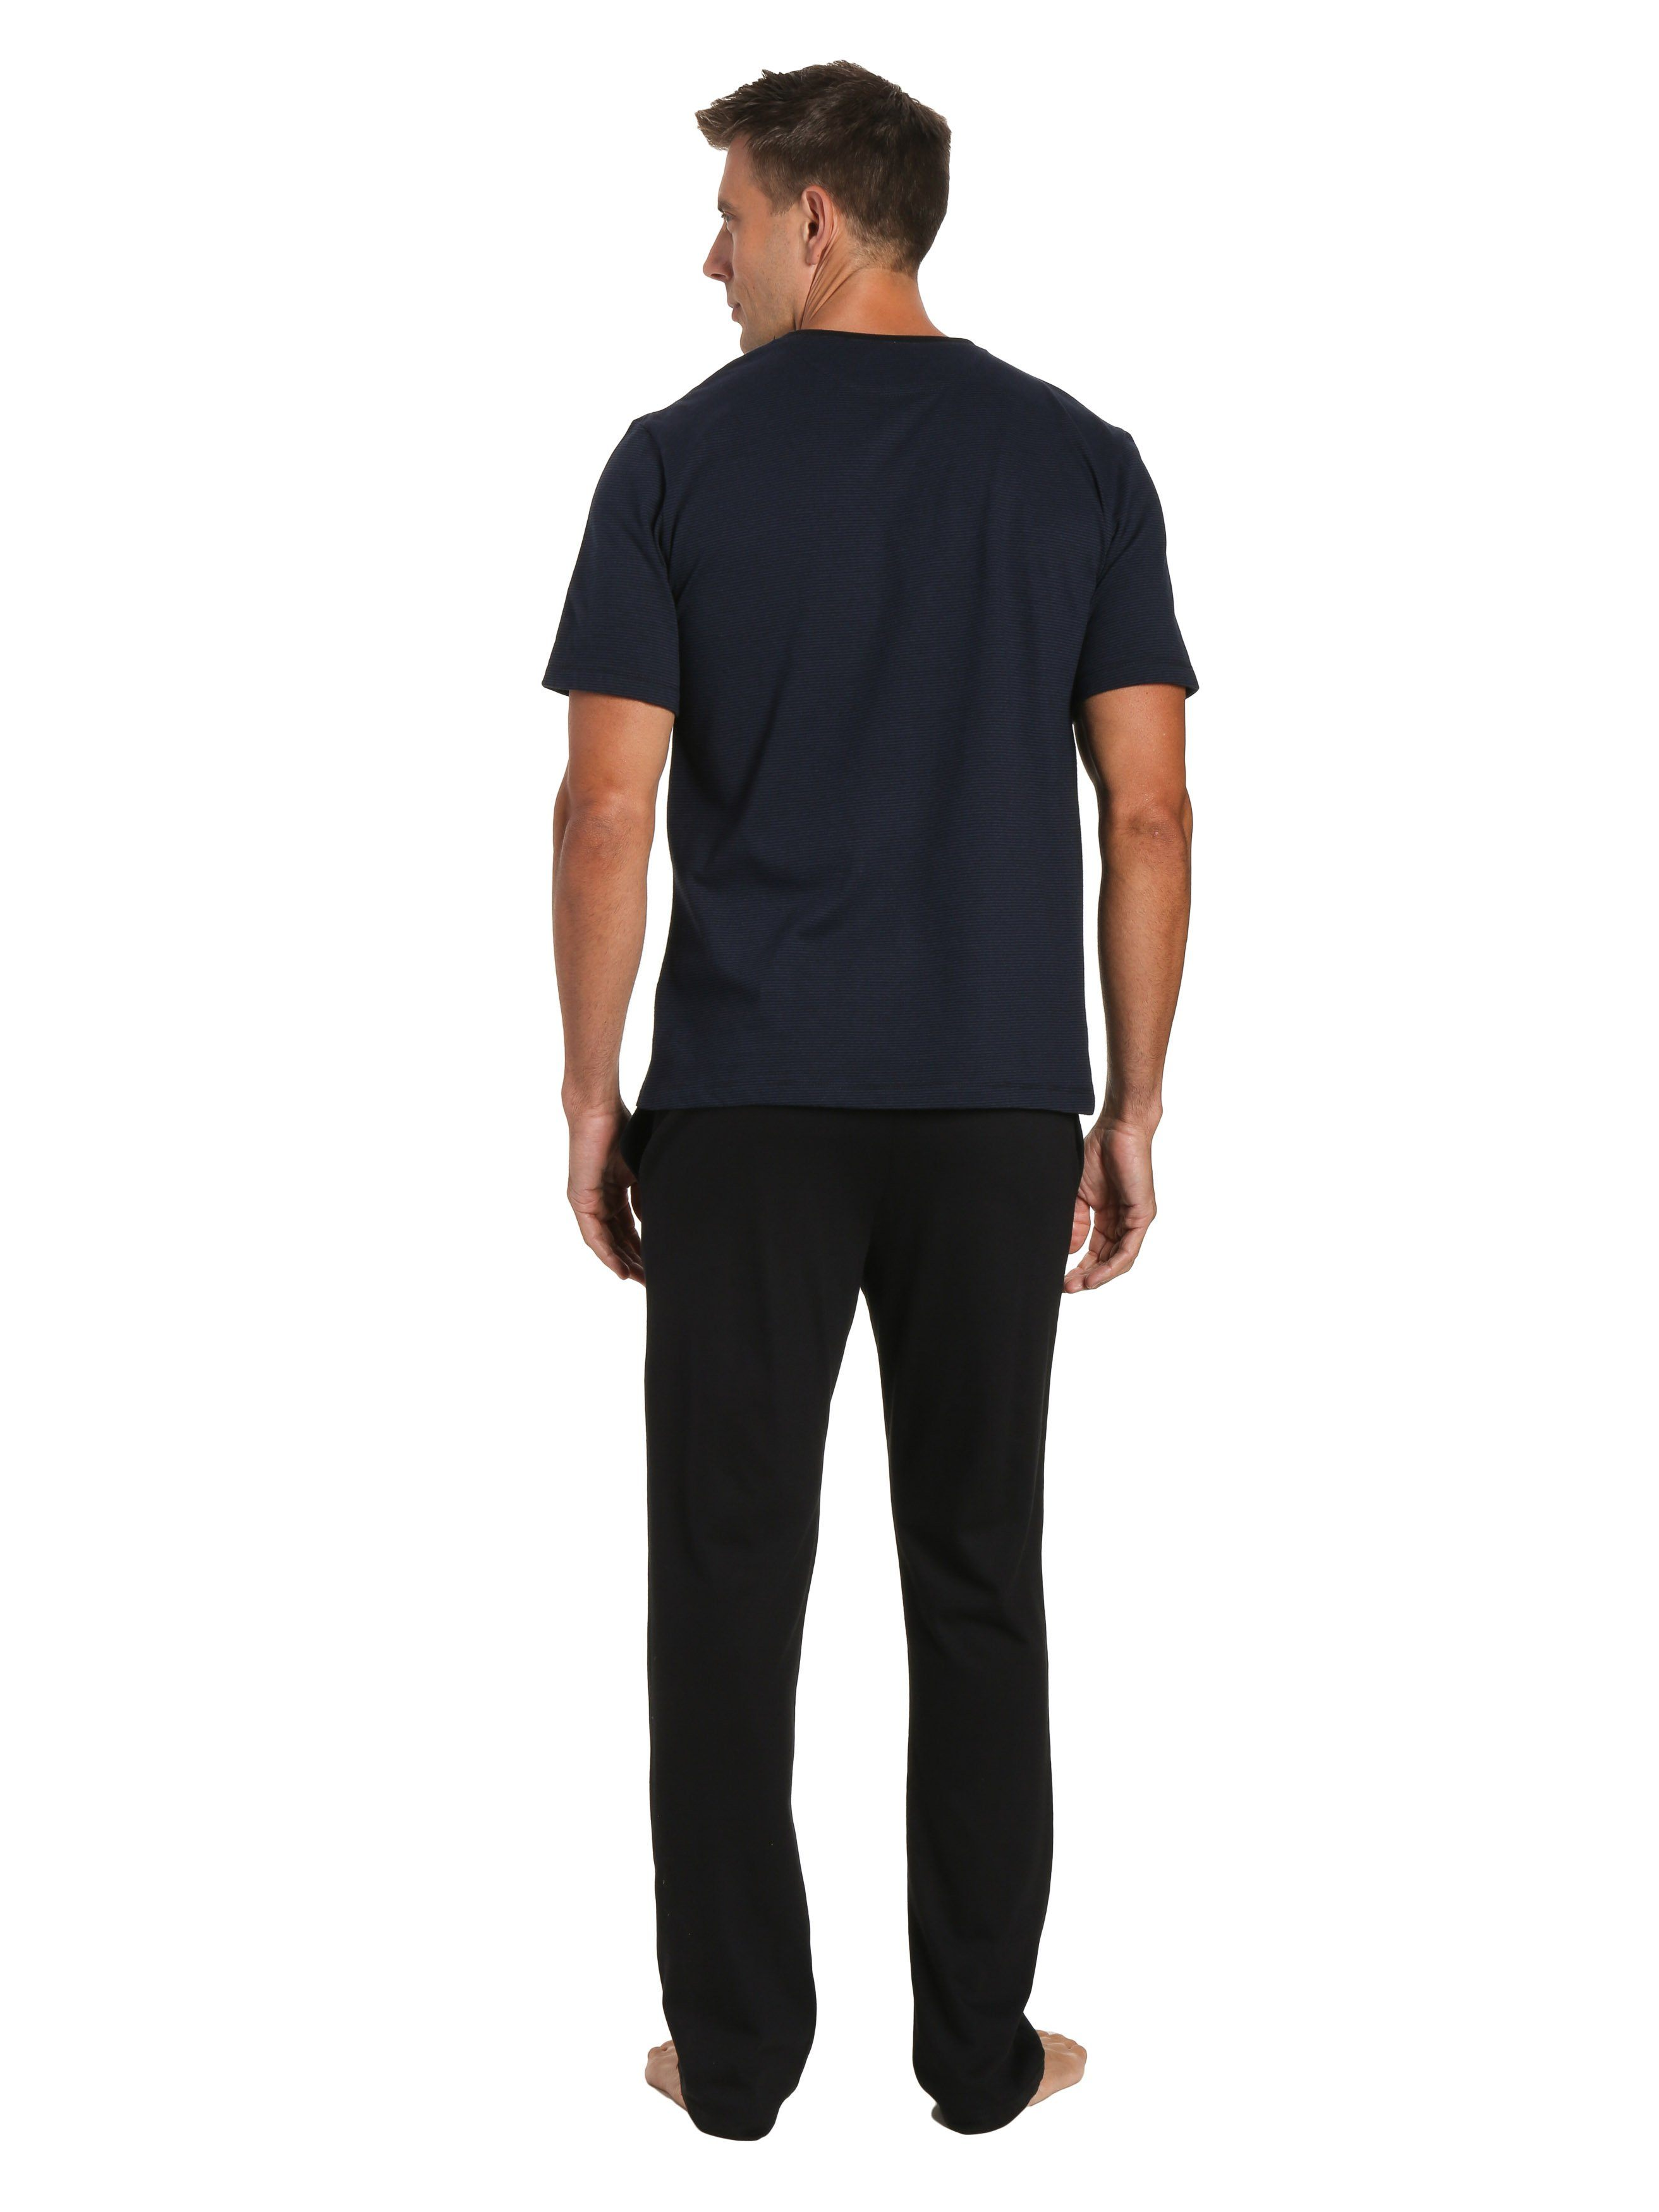 Black Pant with Stripe Navy Top